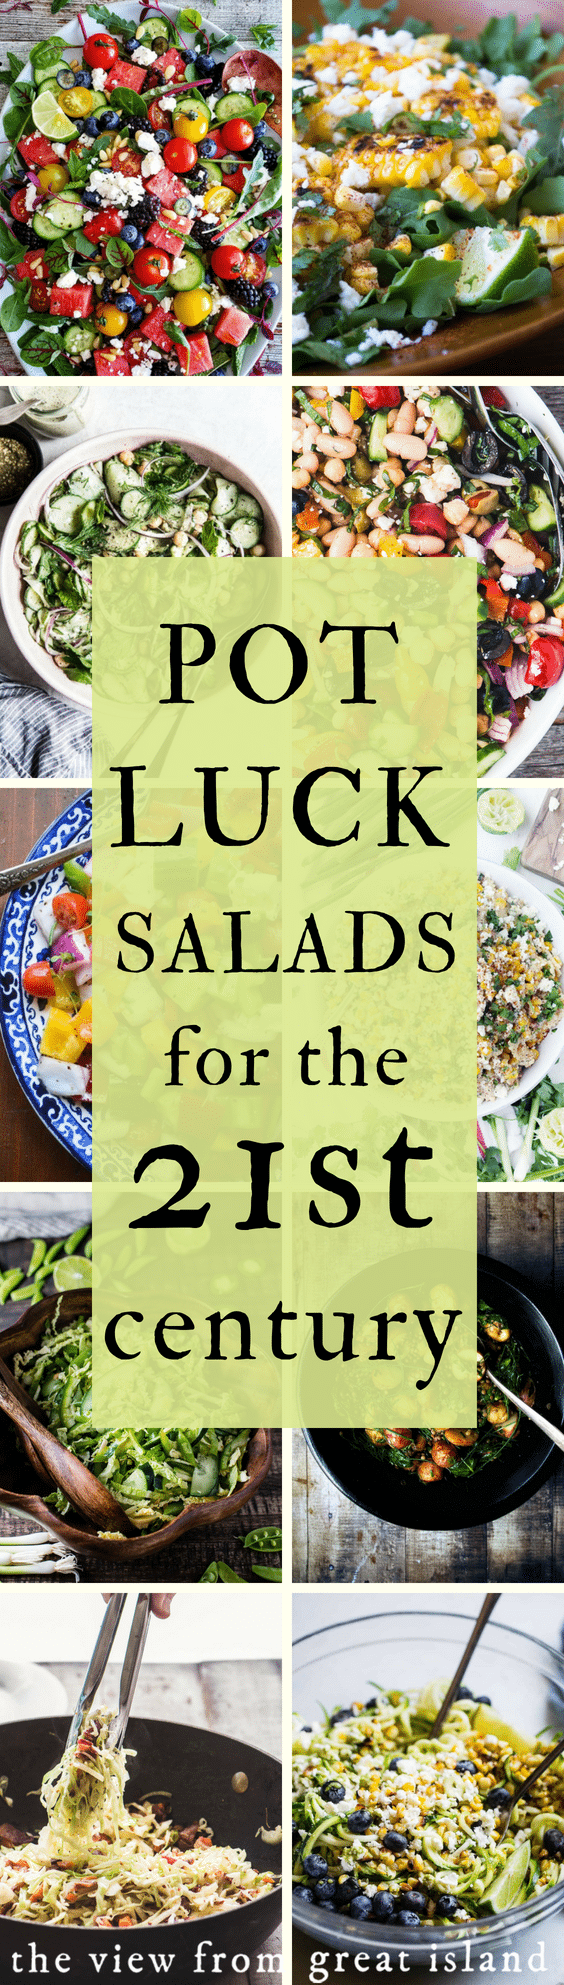 Classic potluck salads revamped for the 21st century ~ everything from macaroni salad to potato salad and beyond, updated and delicious! #picnic #sidedish #barbecue #potluck #easy #best #macaroni #potato #pasta #corn #zoodle #chopped #caprese #threebean #coleslaw #broccoli #fruit #orzo #cucumber #watermelon